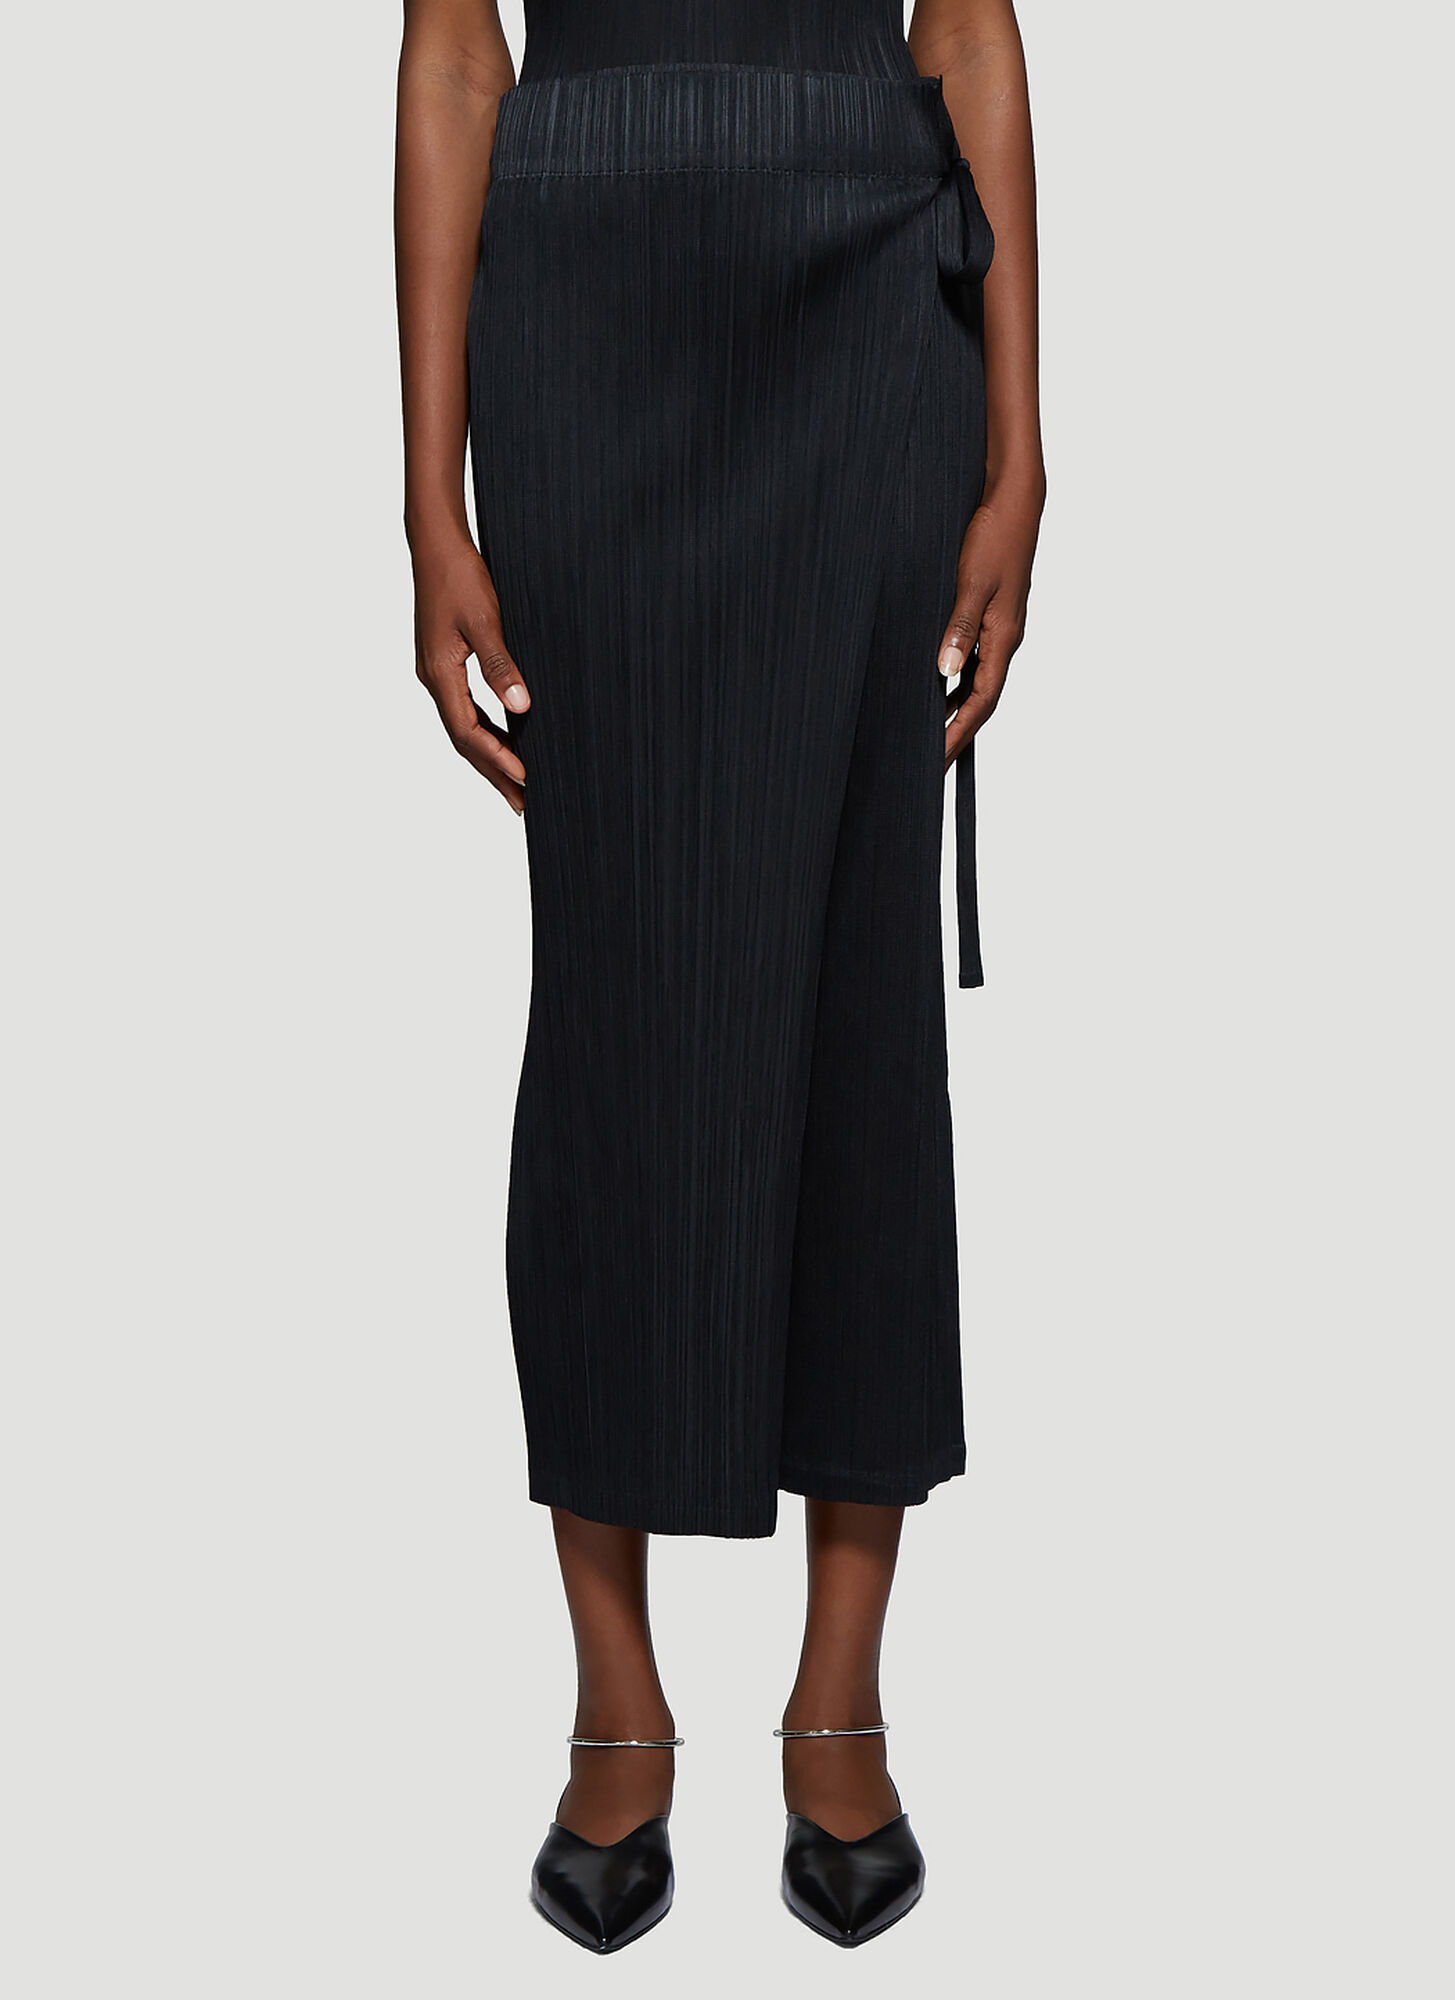 Photo of Pleats Please Issey Miyake Pleated Wrap Pants in Black - Pleats Please Issey Miyake Pants